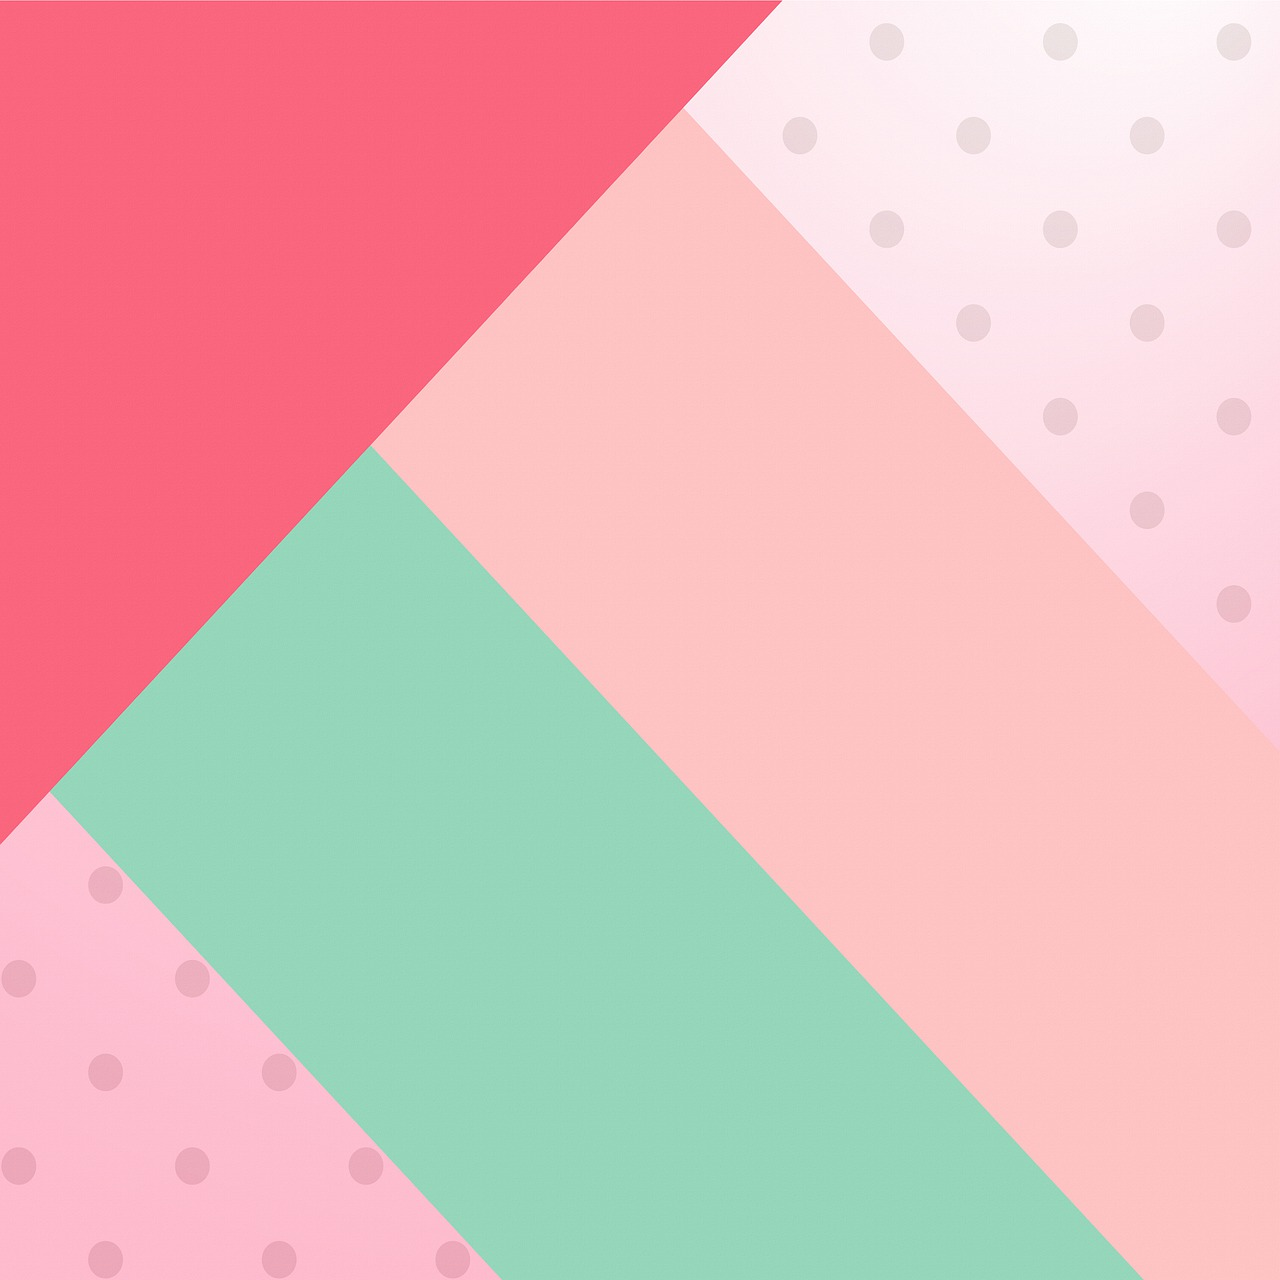 32+ Pink And Teal Digital Patterned Paper DXF